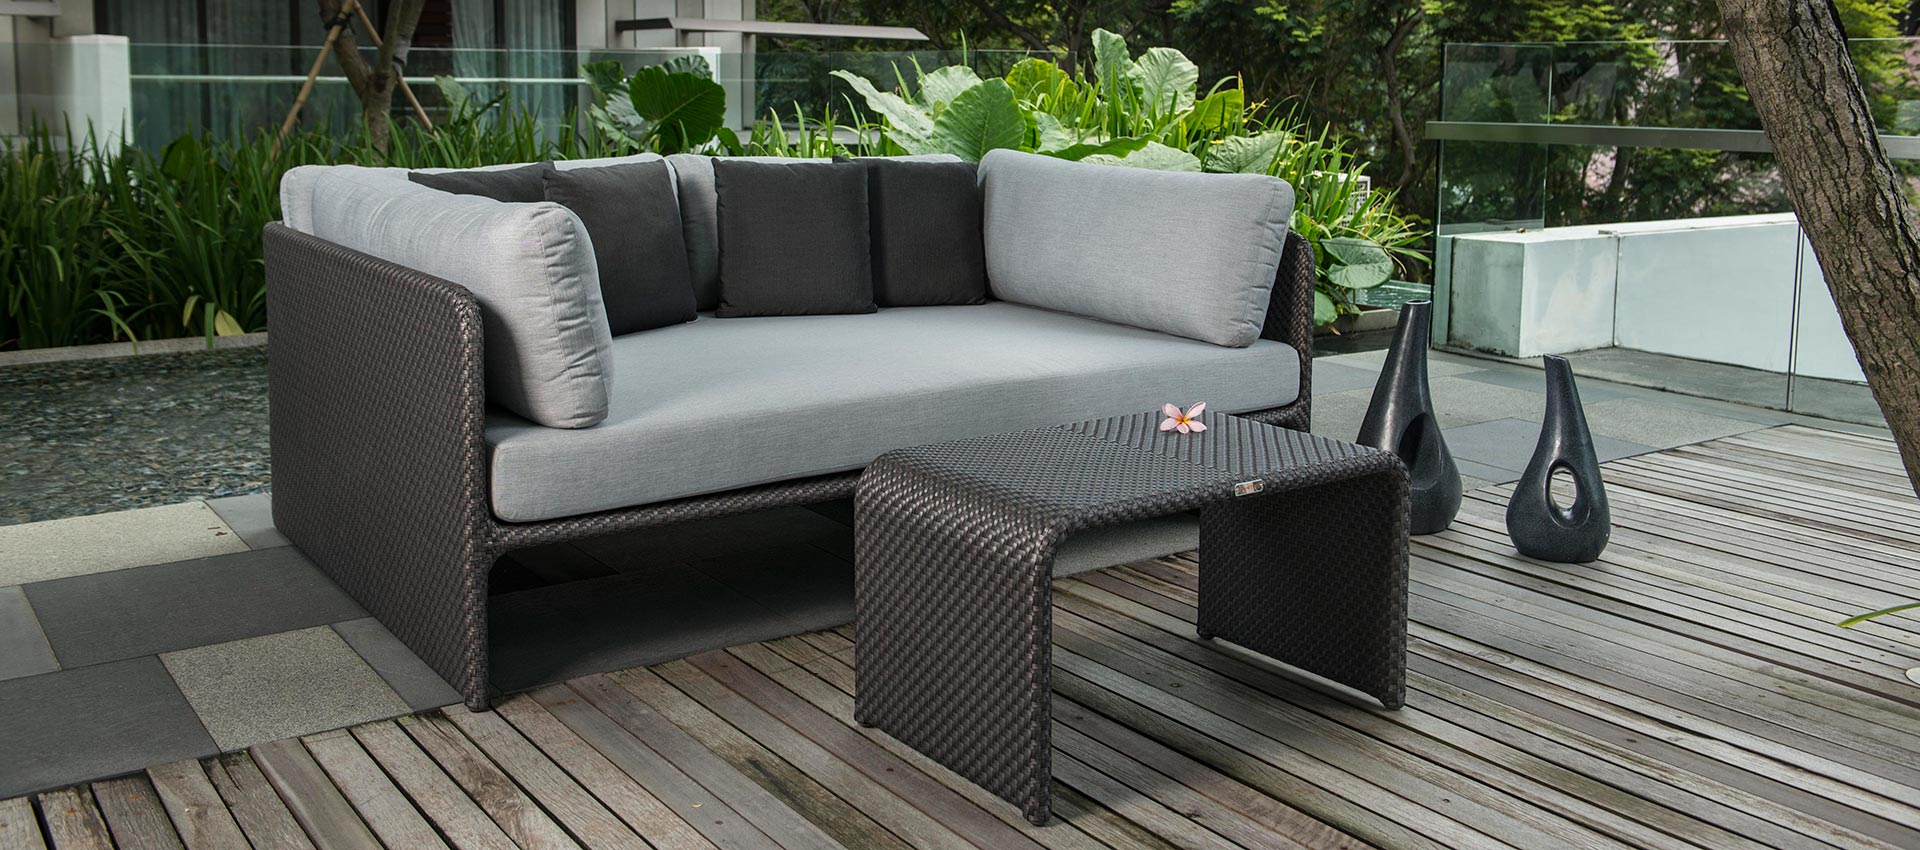 Where can i buy patio furniture 28 images where can i for Where can i buy cheap furniture